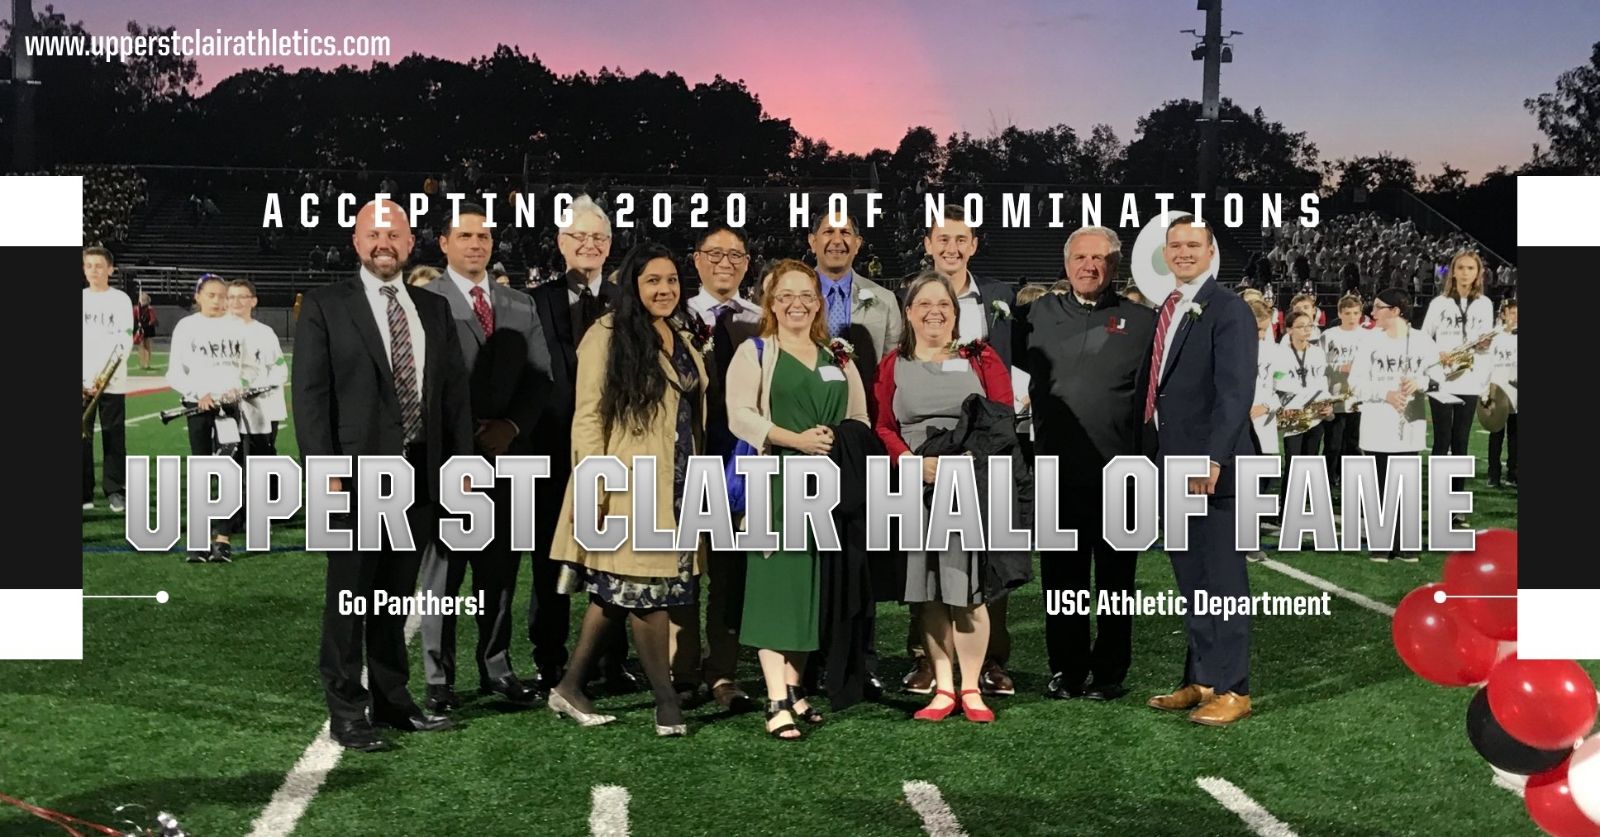 Now Accepting 2020 Athletic Hall Of Fame Nominations Through June 30th!